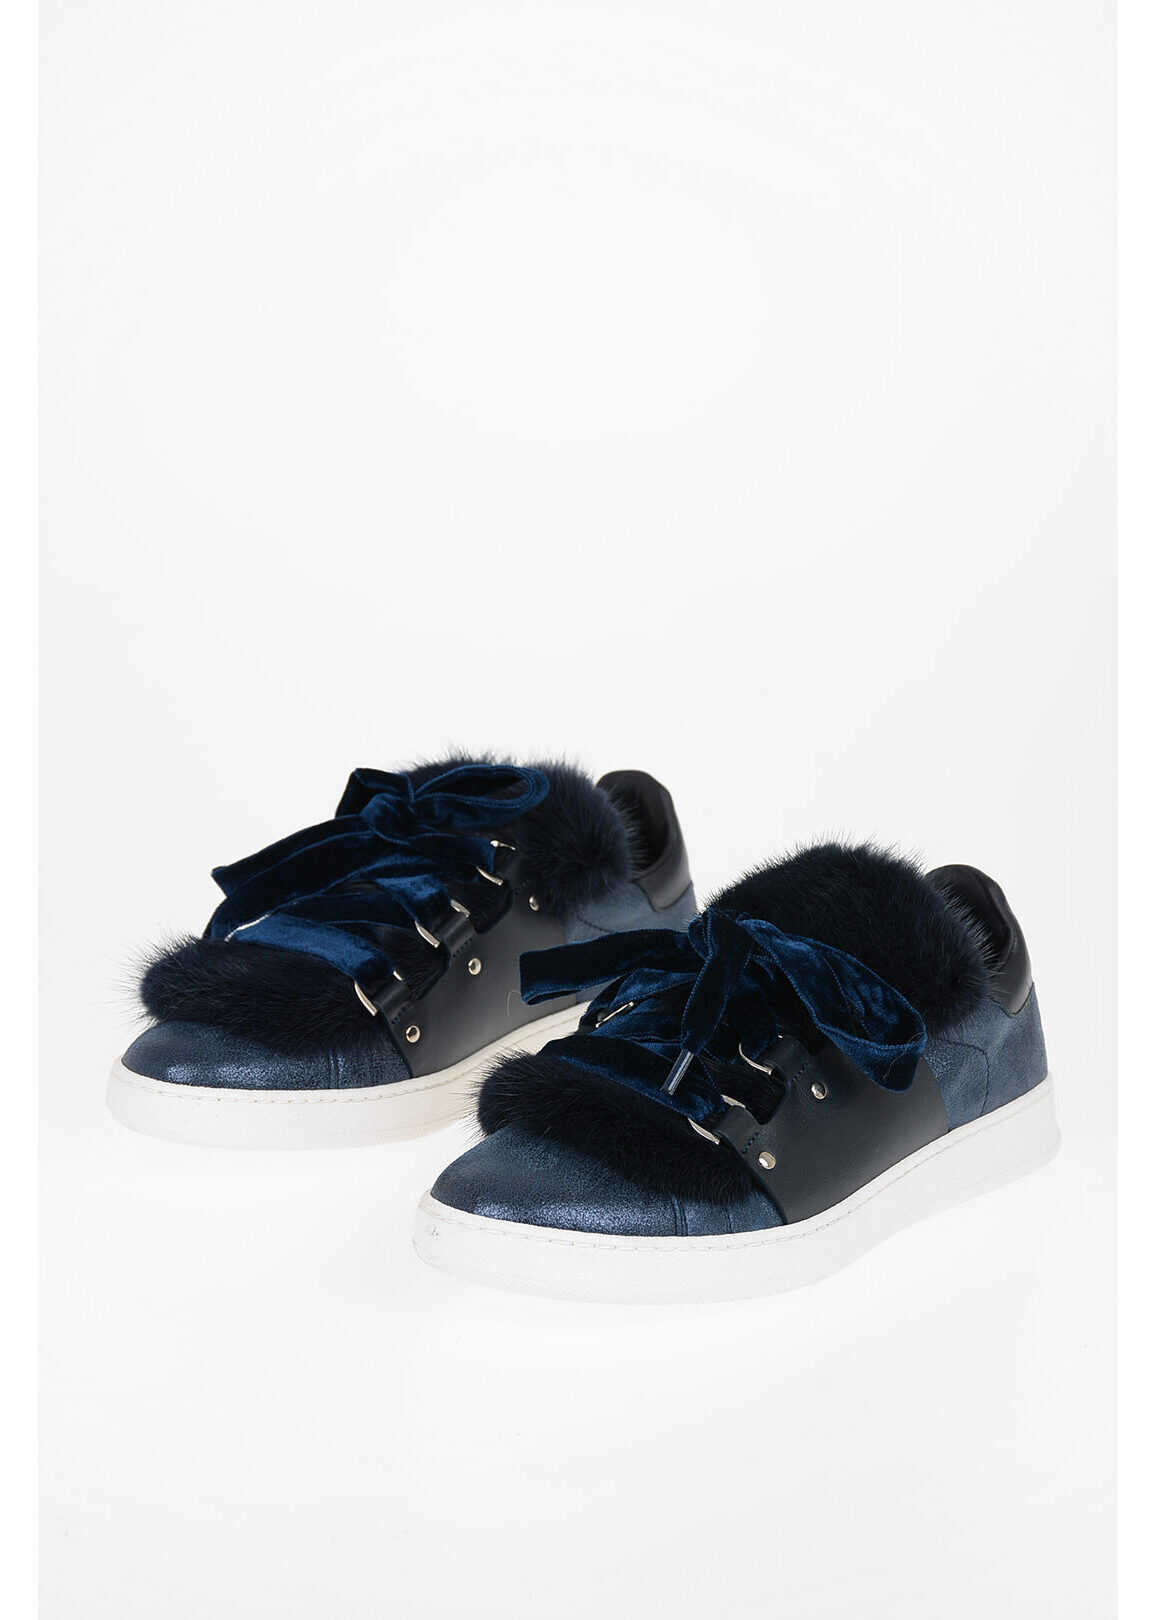 Moncler Leather Sneakers with Mink Fur Details BLUE